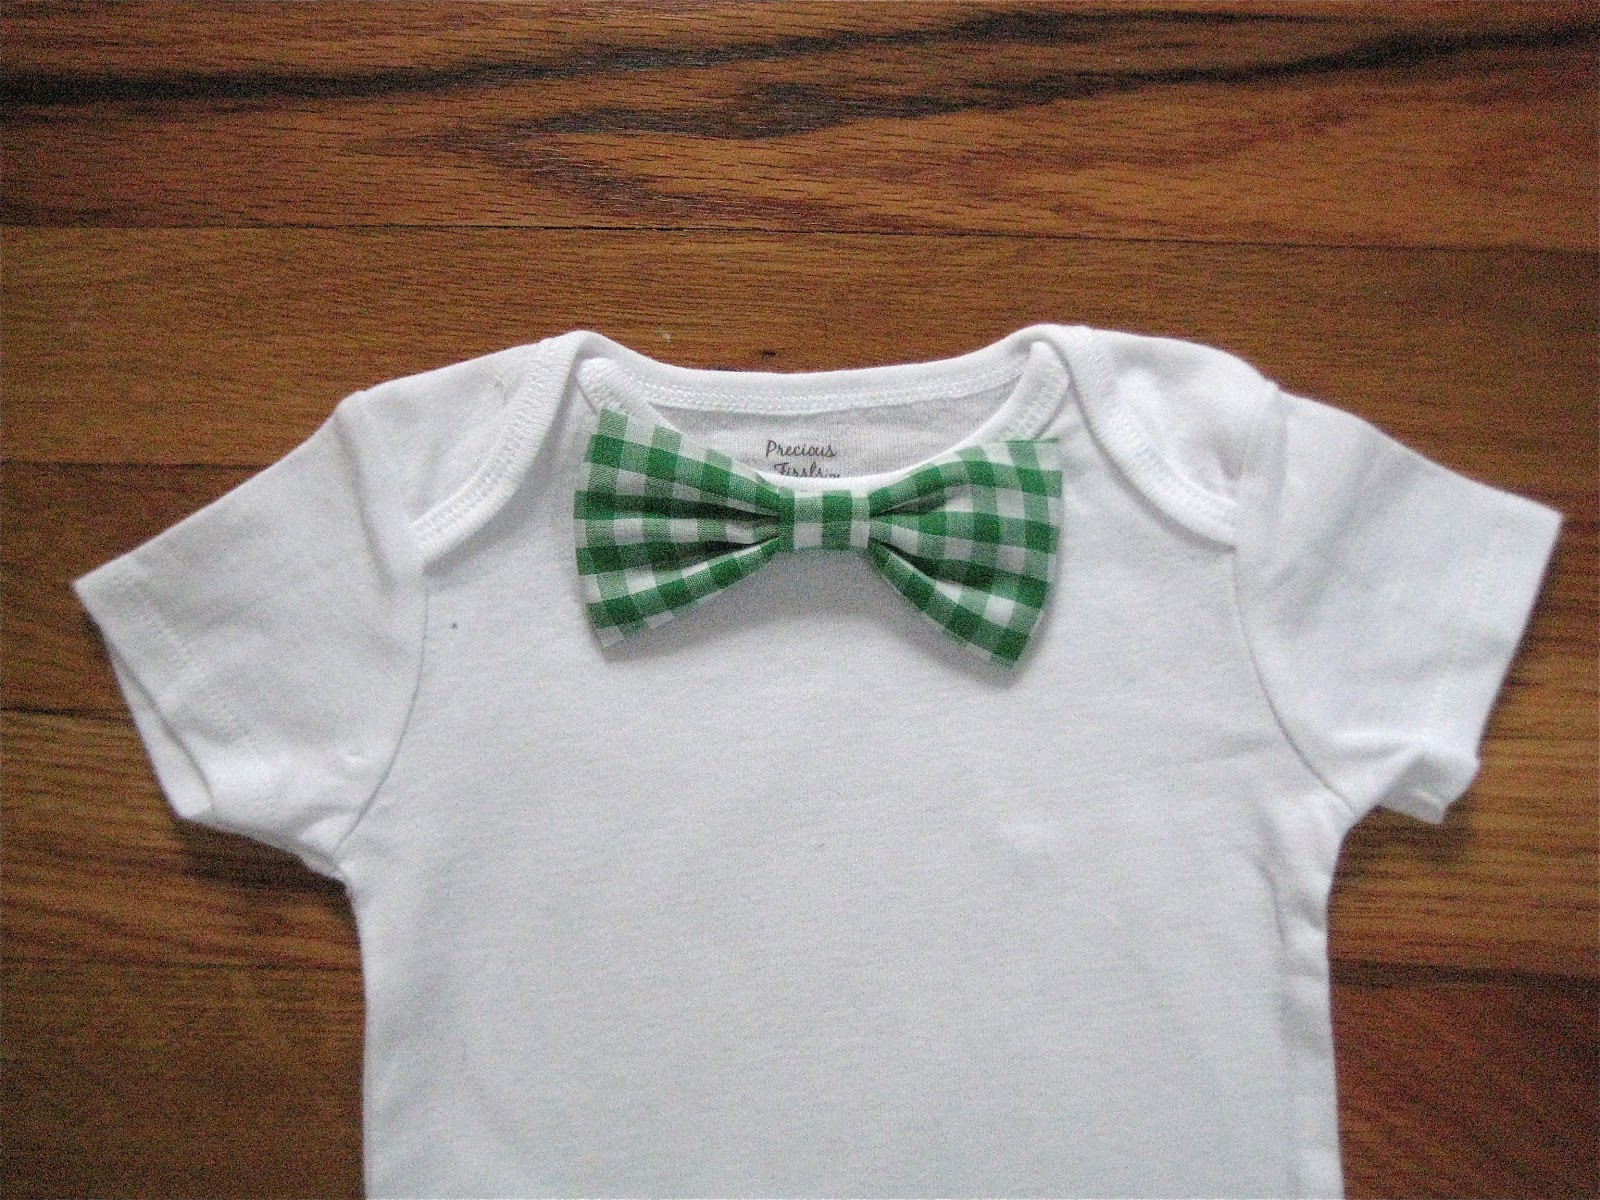 and lovely bow tie onesies even more